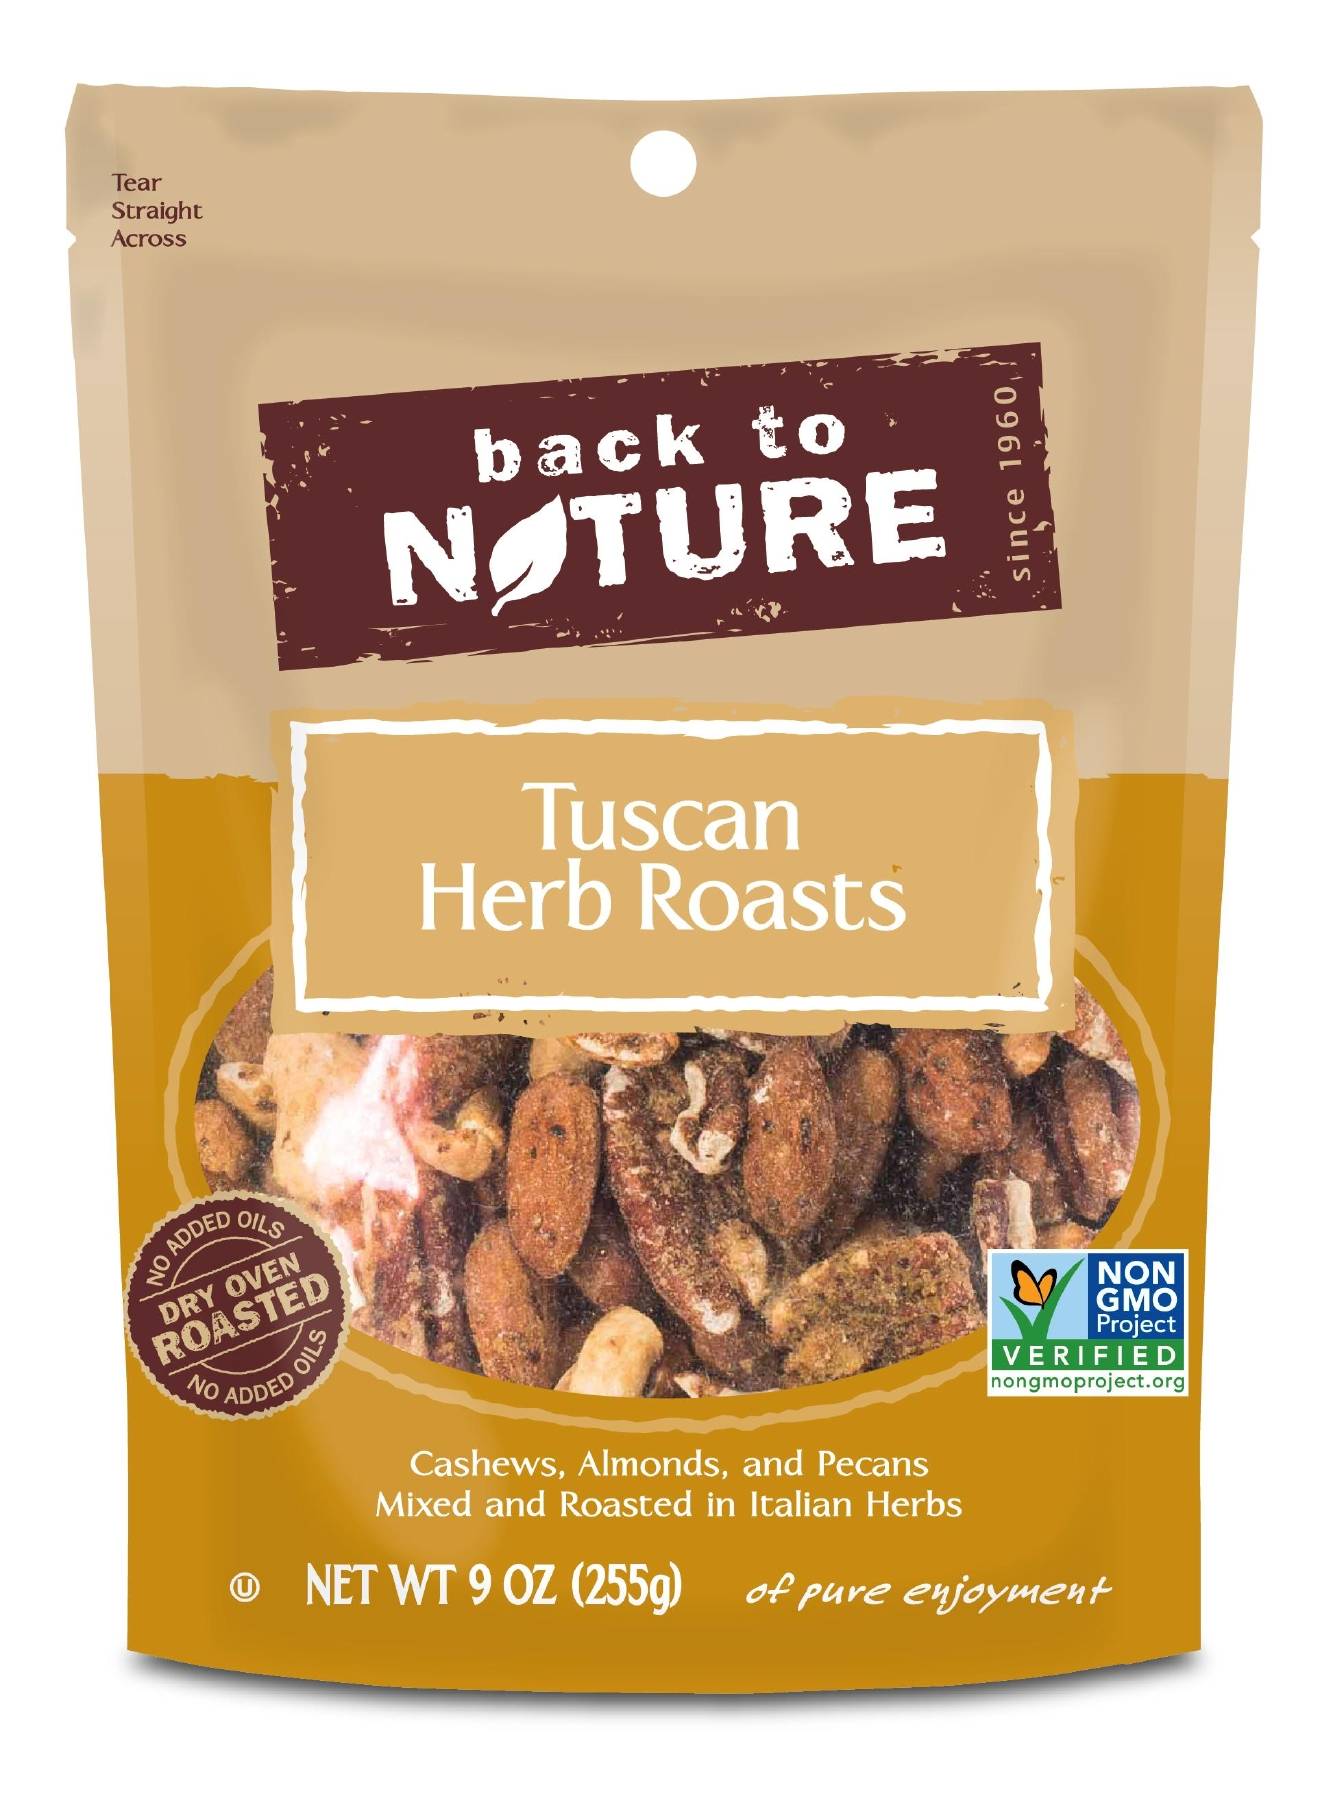 Back to Nature Tuscan Herb Roast Nuts: Big flavor, fat and protein rich for a filling snack// Sarah Waybright, MS, RD, Owner of WhyFoodWorks LLC// (Back to Nature)